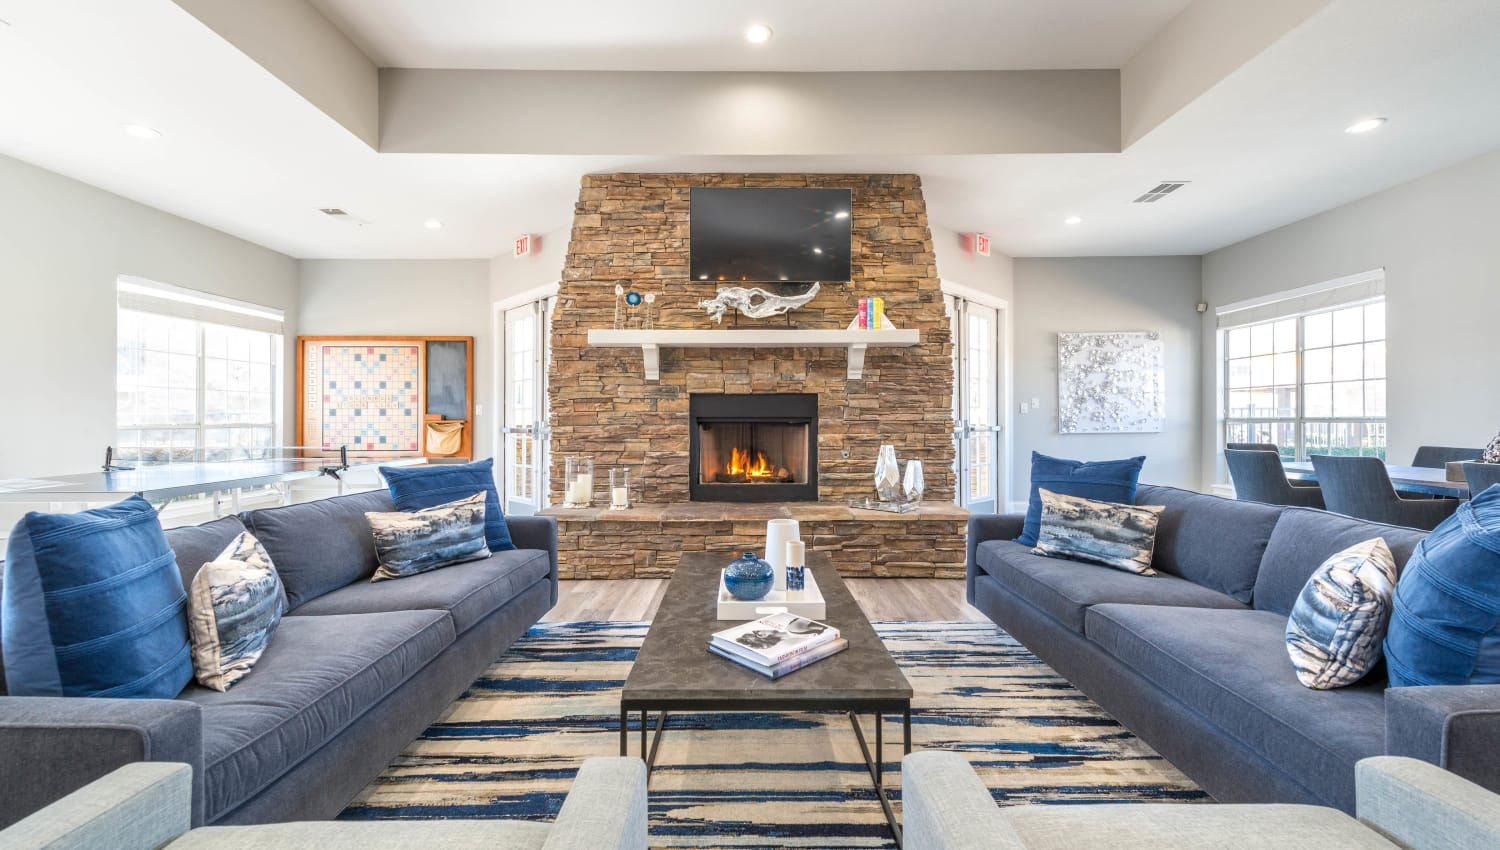 Luxurious lounge are in front of the fireplace in the resident clubhouse at Olympus Stone Glen in Keller, Texas